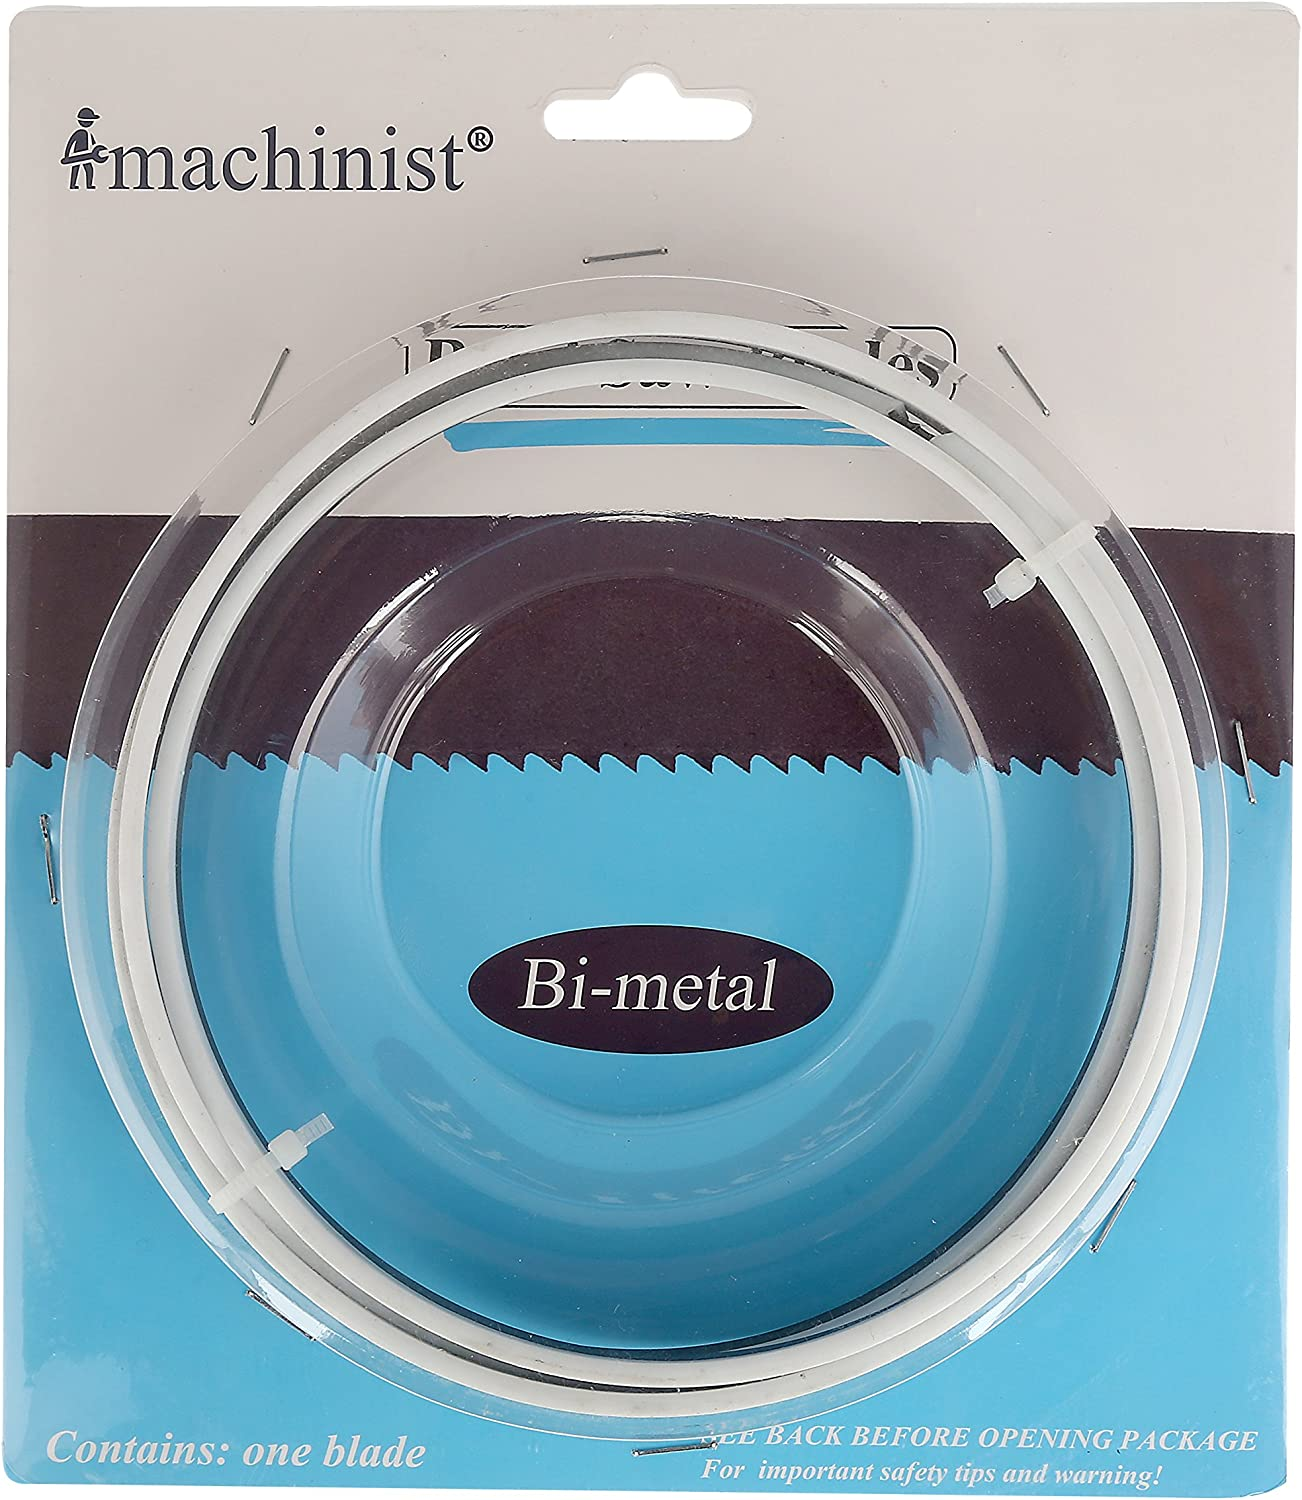 Imachinist S5914126 Limited time trial price Bi-metal 59-1 4